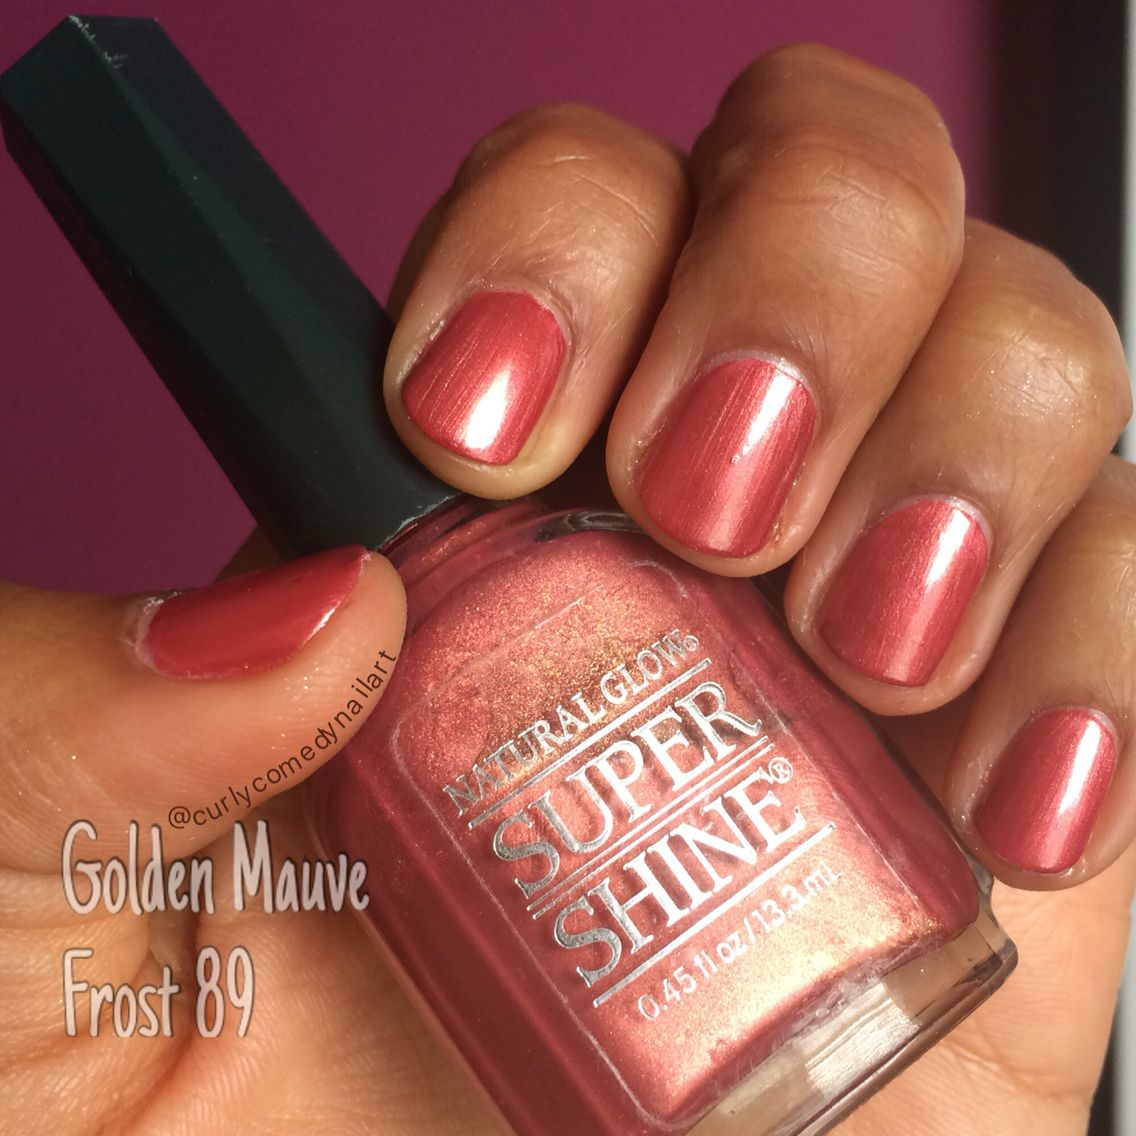 Naturalistics Natural Glow Super Shine in Golden Mauve Frost 89 | My ...